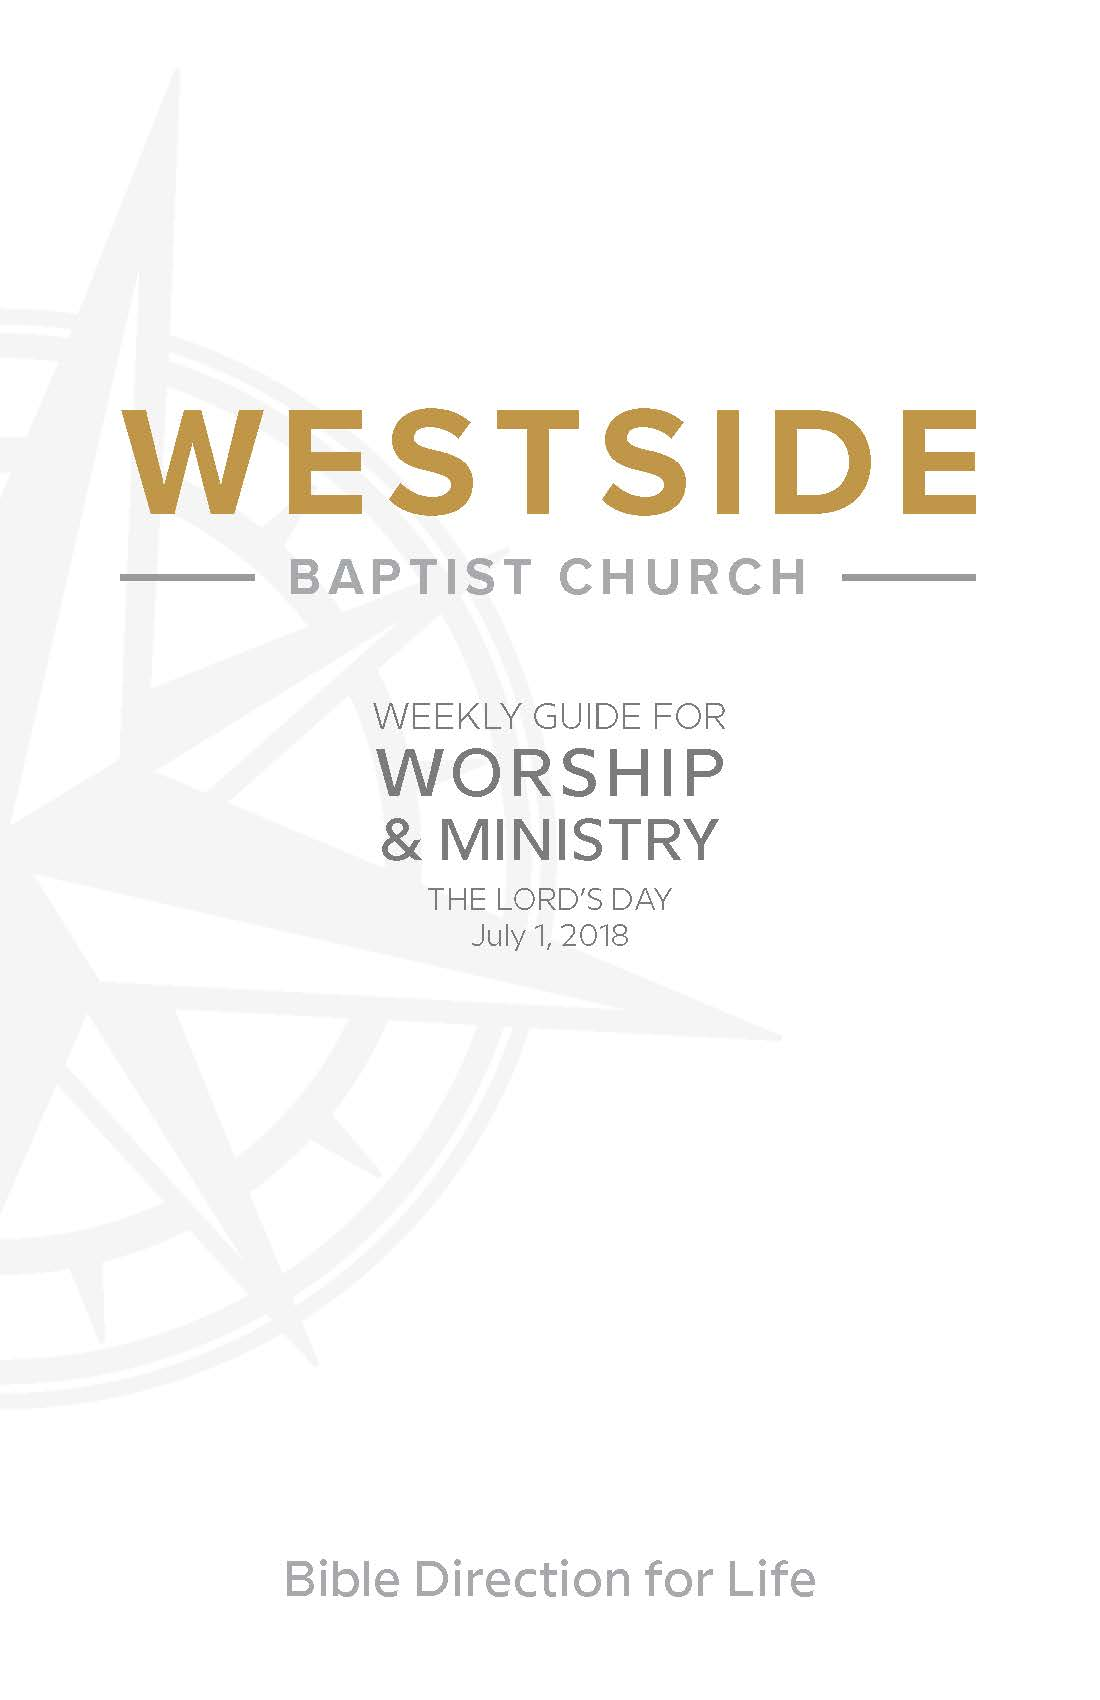 Weekly Guide for Worship and Ministry—July 1